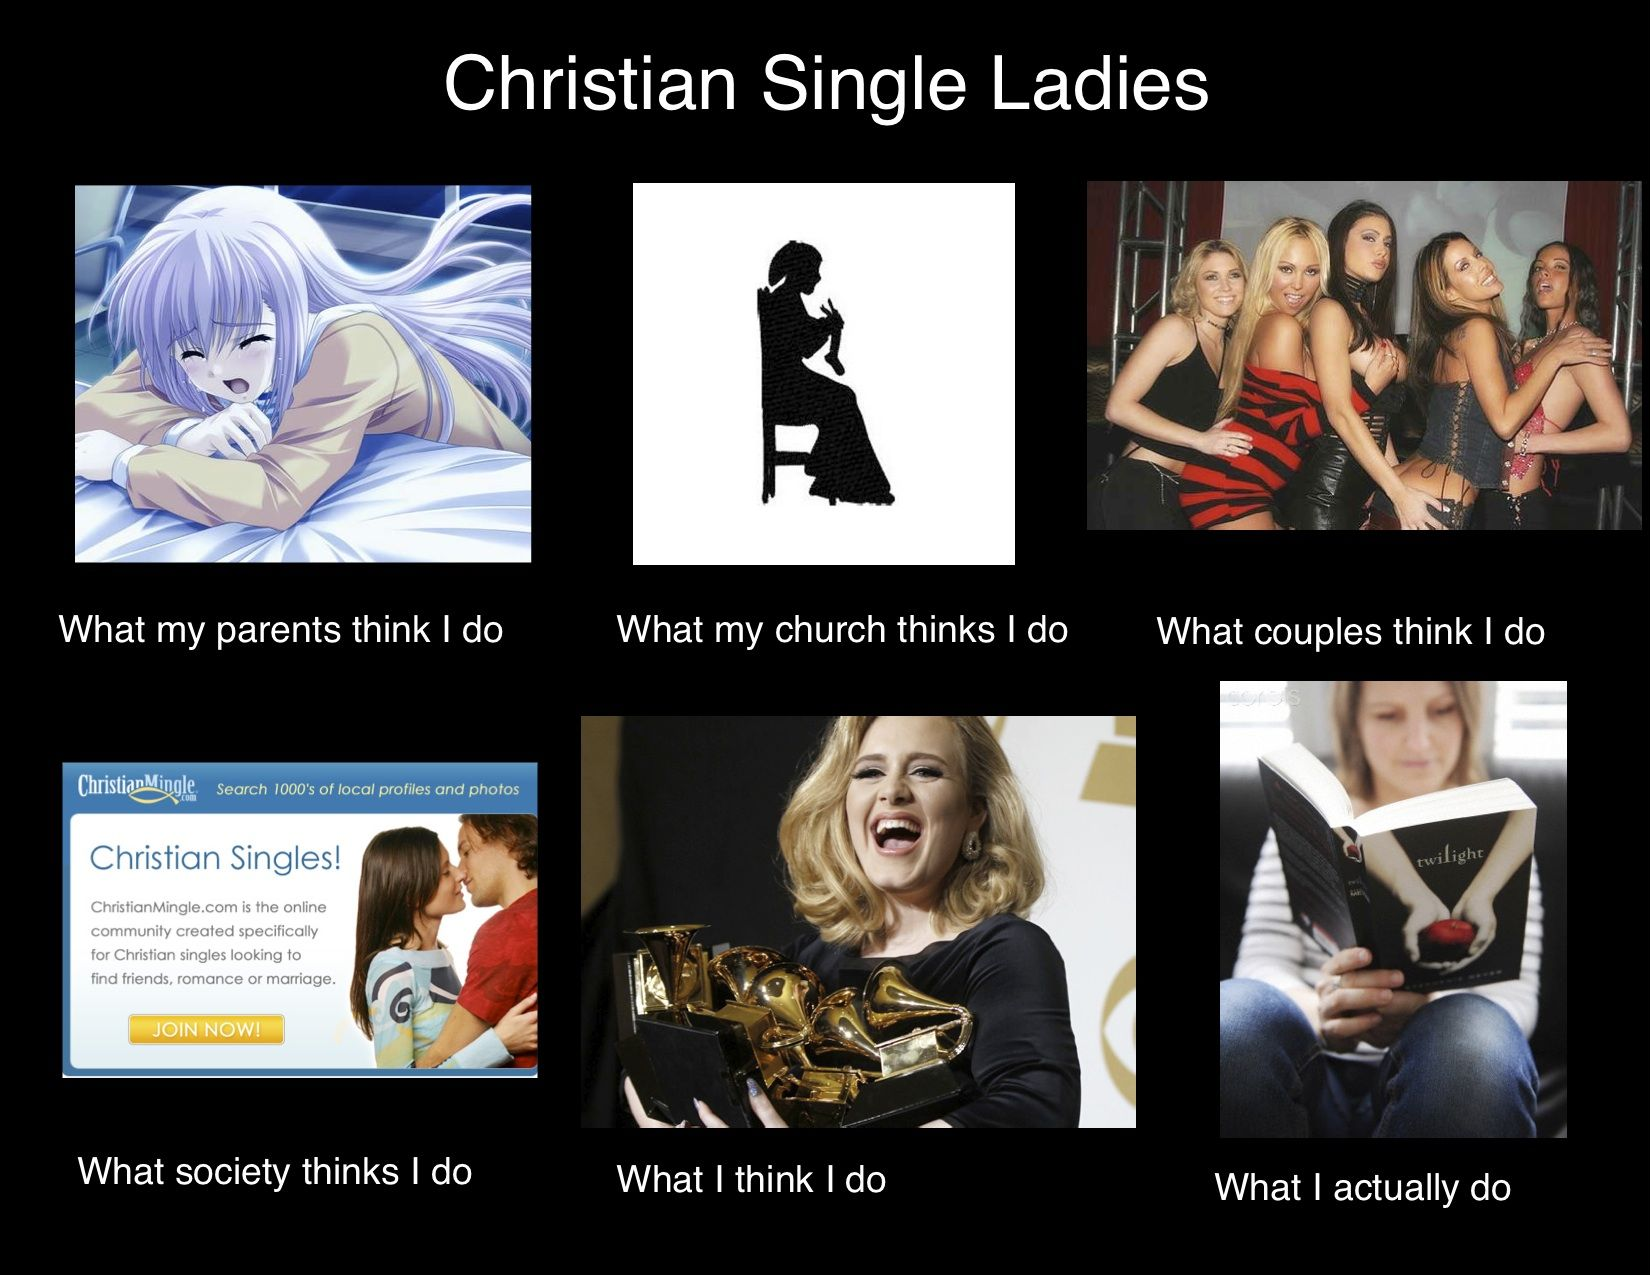 freising single christian girls Top 5 myths of christian dating  they'd play video games and eat pizza our sexuality is what gets us interested in women in the first place, and that's a good thing.